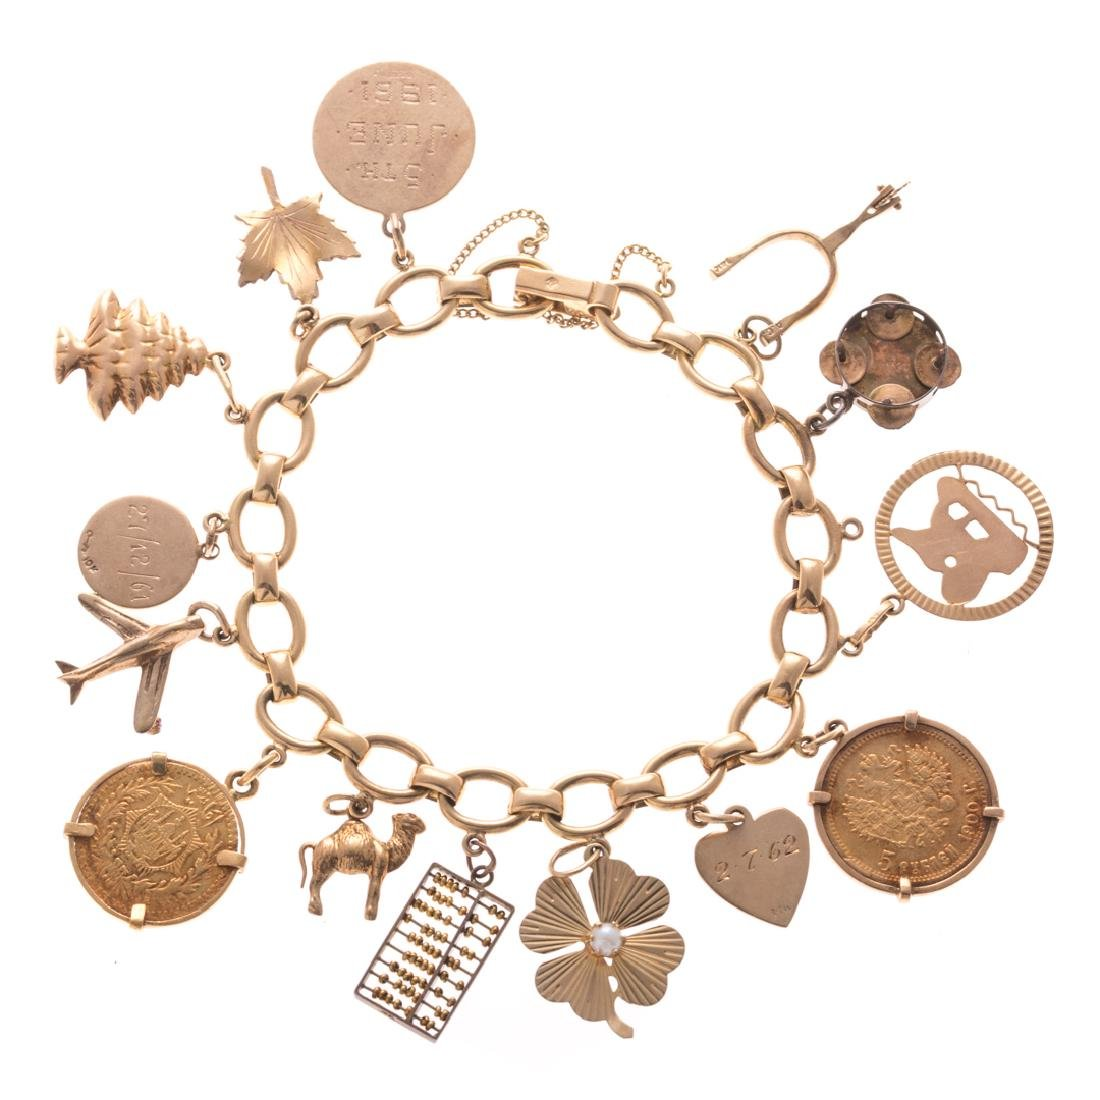 A Lady's Charm Bracelet in 14K Gold